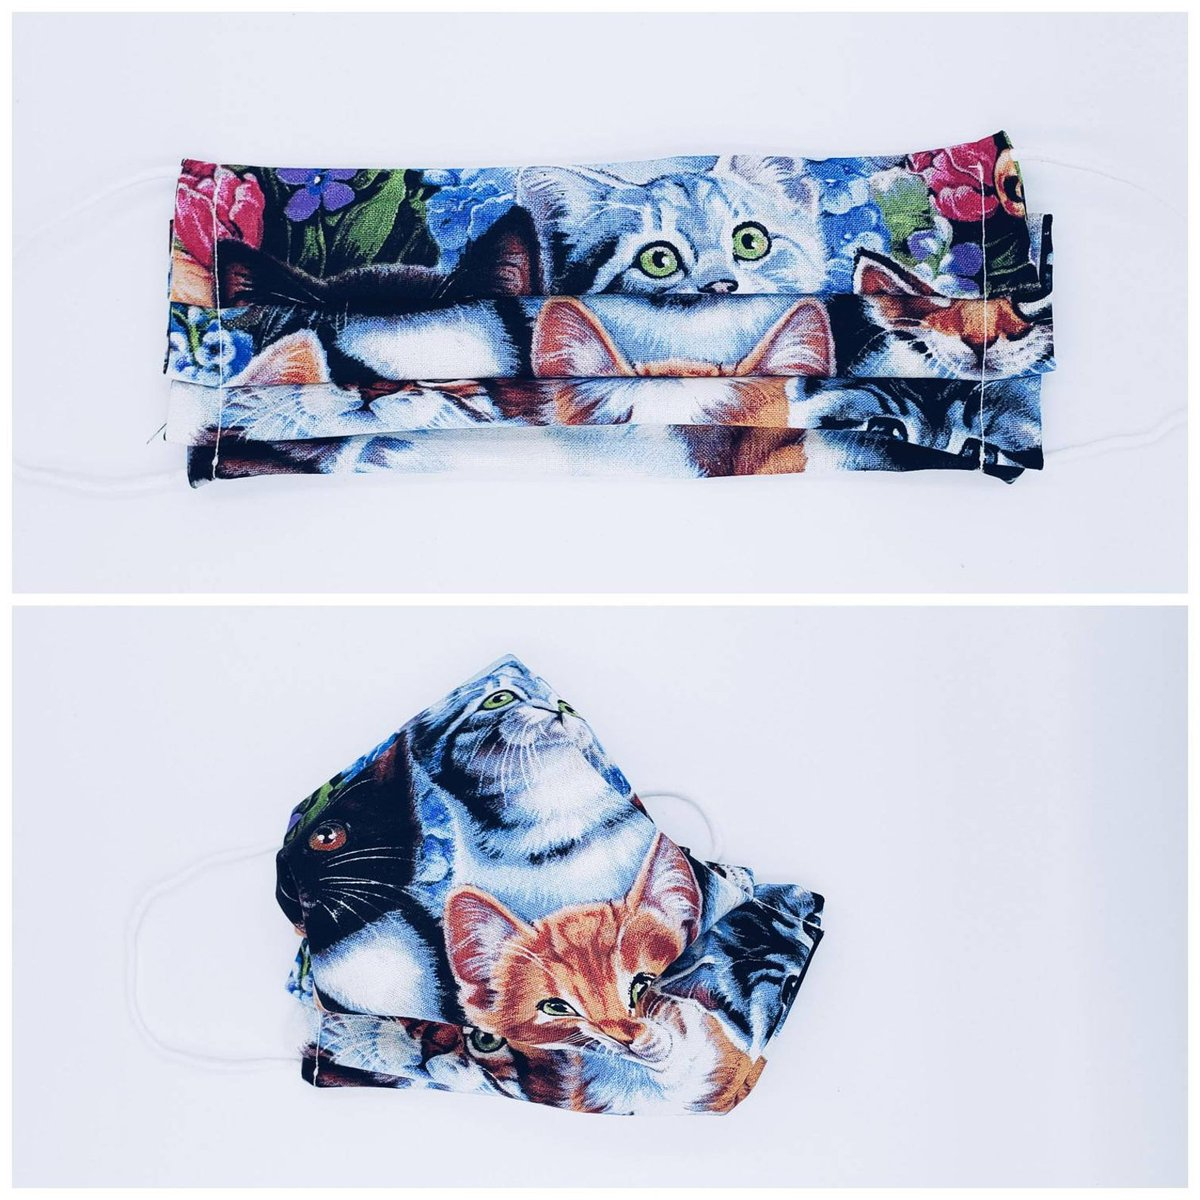 Get a Cat Fabric Face Mask today! . . .  . . . #FabricFaceMask #FaceCovering #ClothFaceMask #Handmade #Etsy #Cat #Kitten #CatLover #KittenLover #CatLady #StaySilly